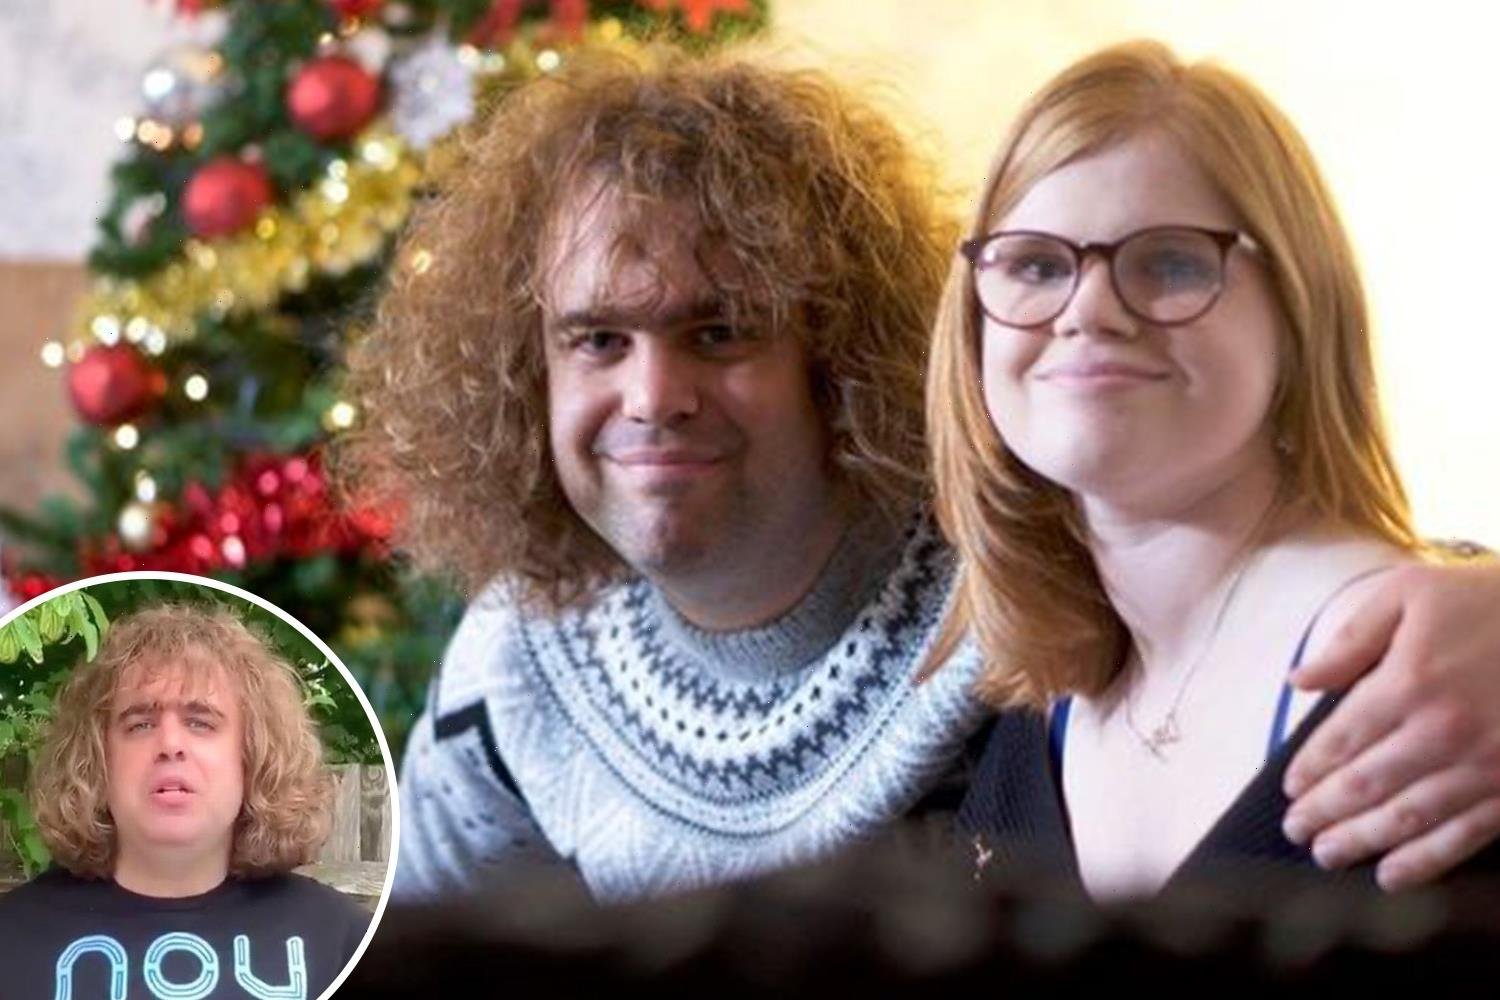 The Undateables star Daniel reveals he's cancelled his wedding and split from fiancé Lily